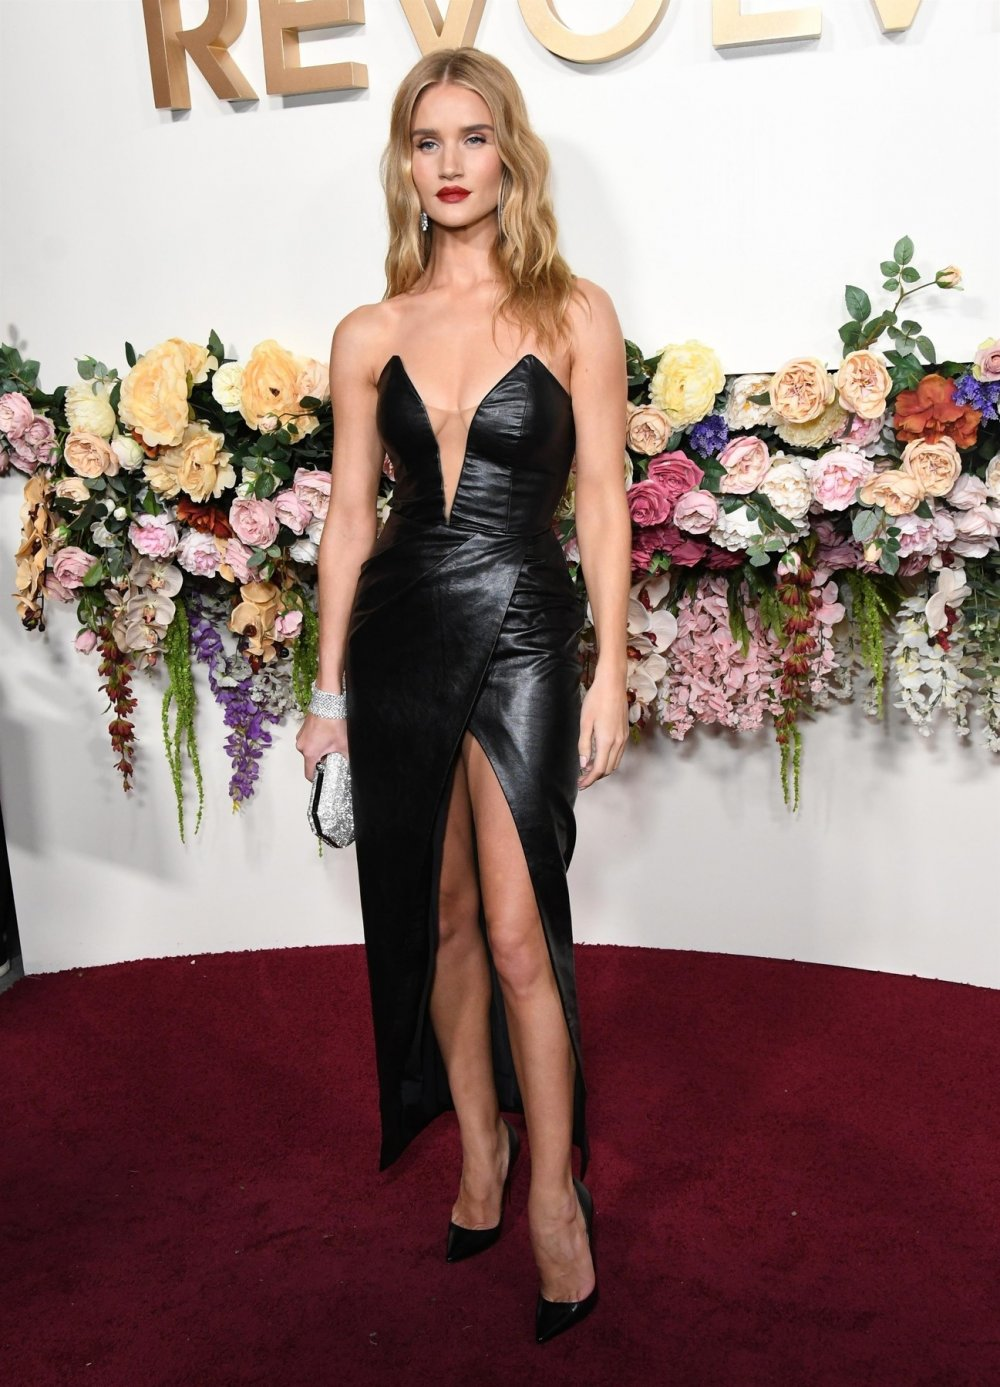 Rosie Huntington-Whiteley sets pulses racing in a perilously plunging black PVC wrap dress as she leads the stars at the Revolve Awards in LA